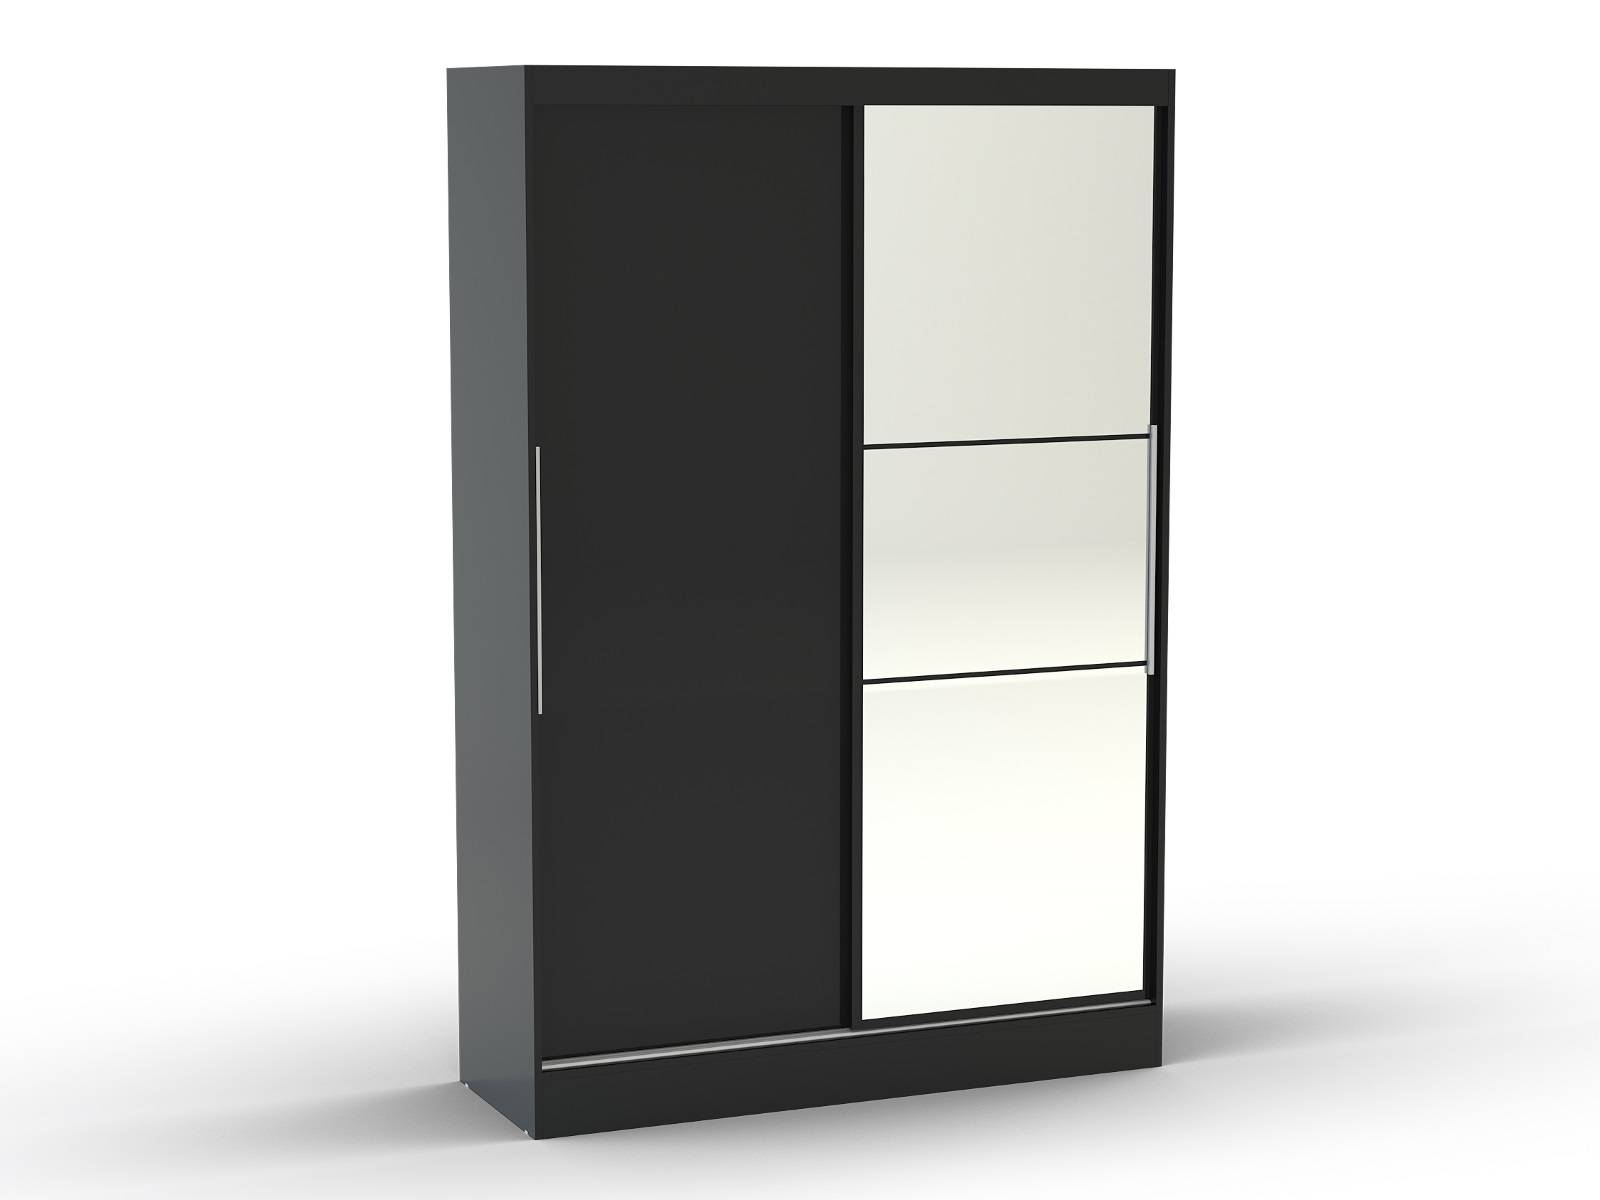 Lucerne Sliding Wardrobe With Mirror (Black) | All Ranges for Black Wardrobes With Mirror (Image 9 of 15)